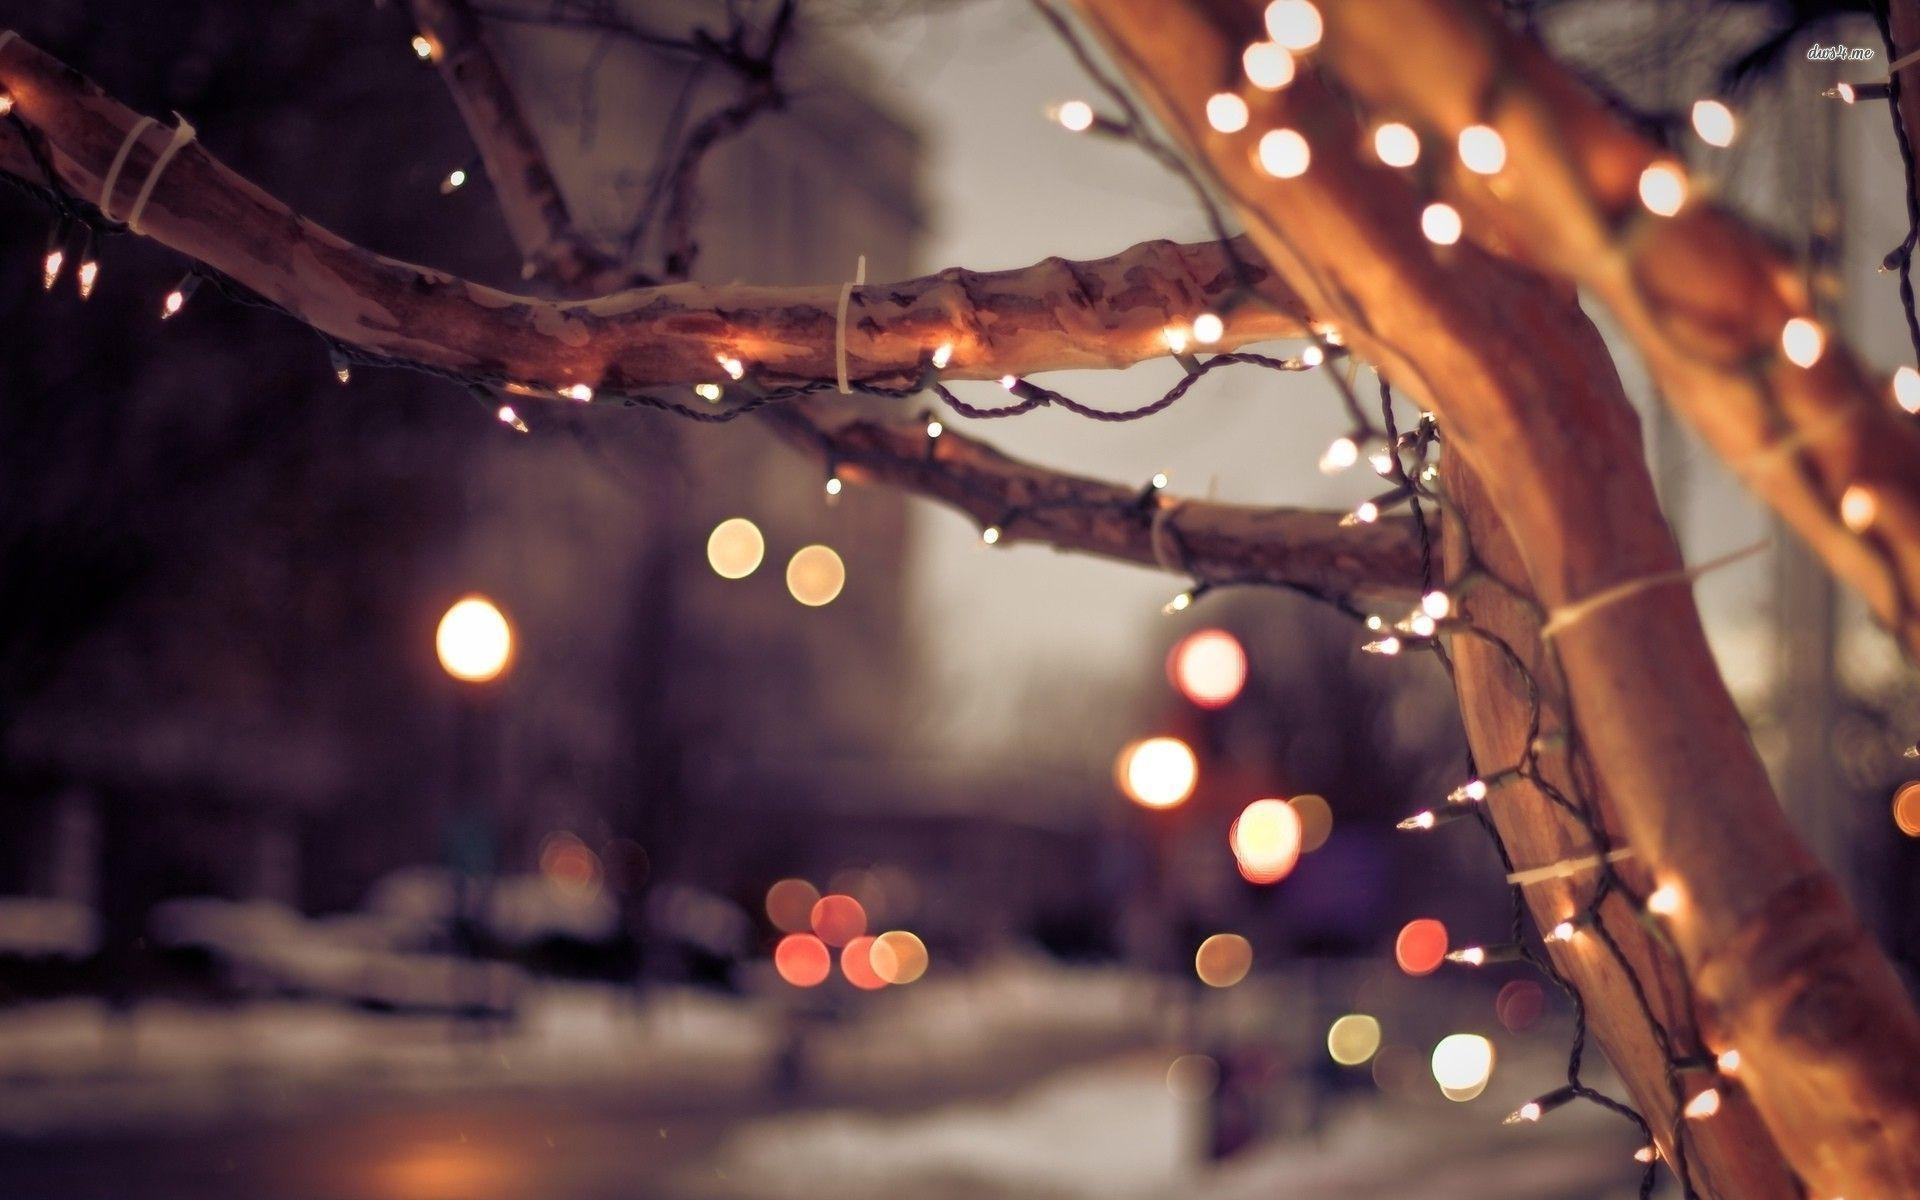 December Christmas Lights Wallpapers Top Free December